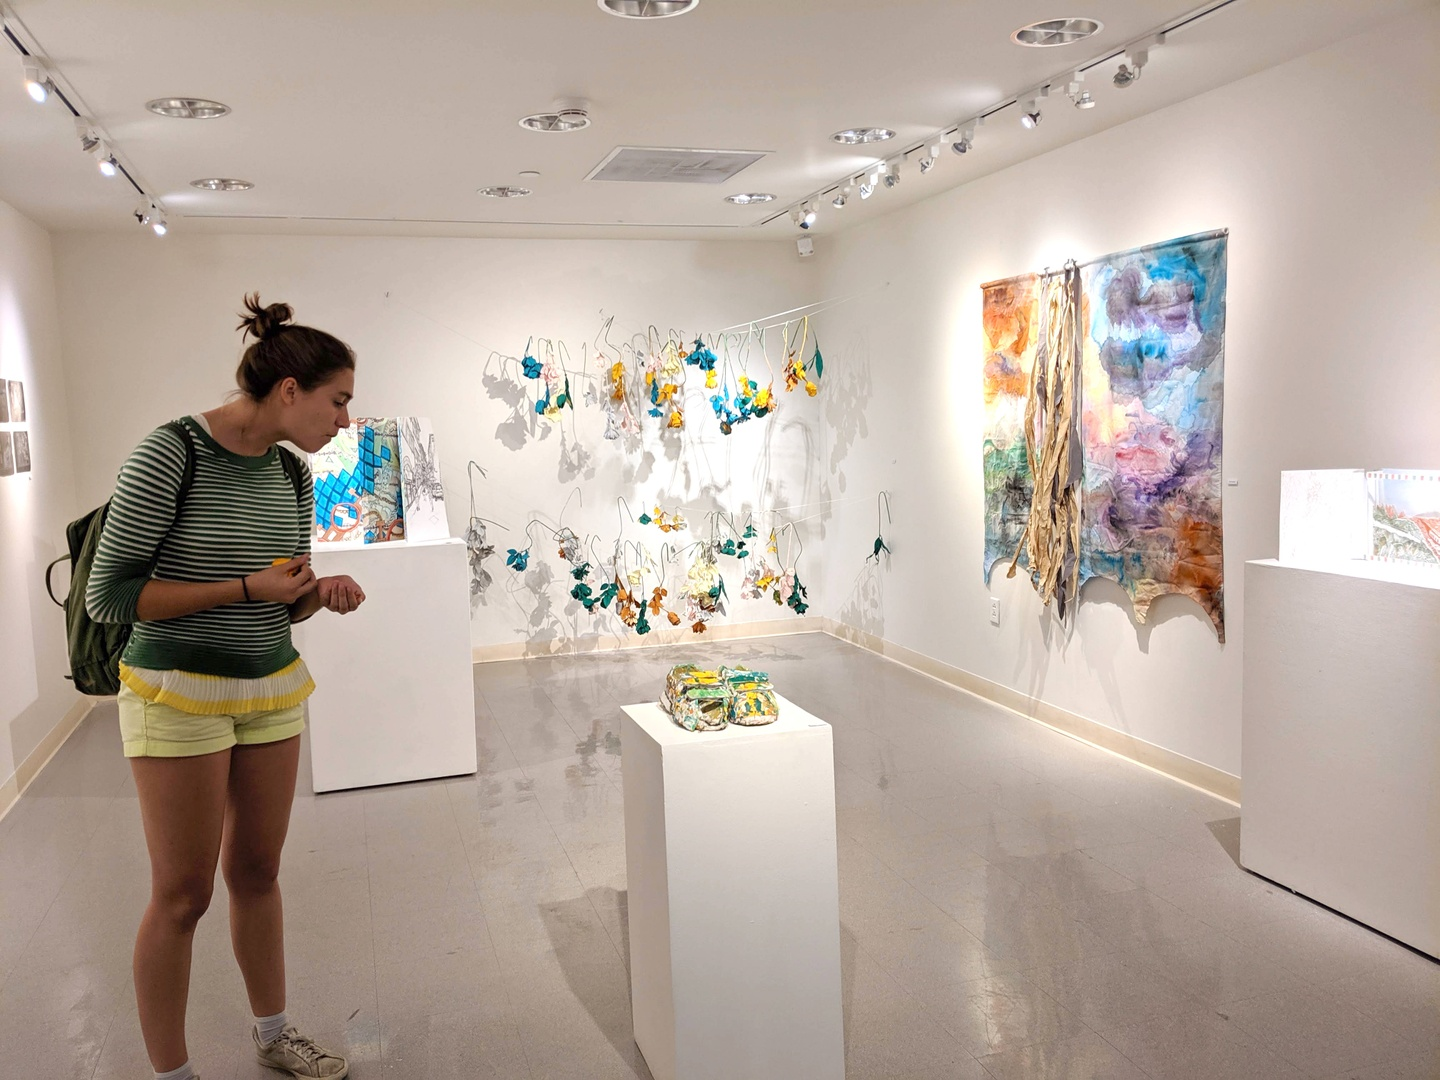 A person looks at an object on a white plinth in a small white-walled gallery space.